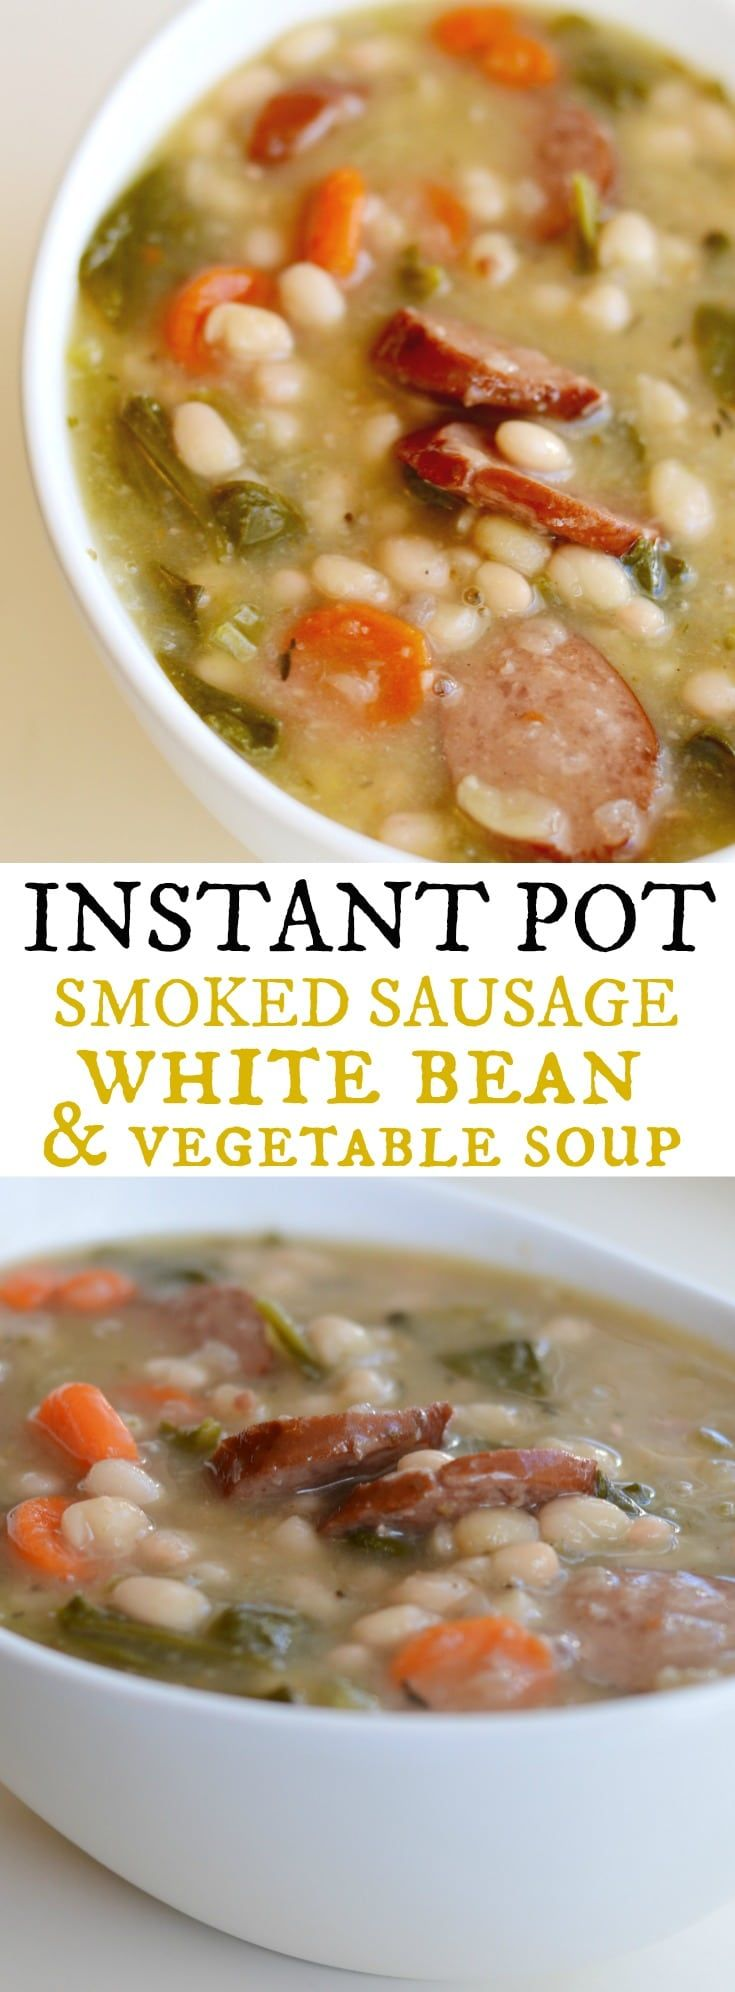 Instant Pot White Bean Soup with Sausage and Vegetables #instantpotrecipeseasy